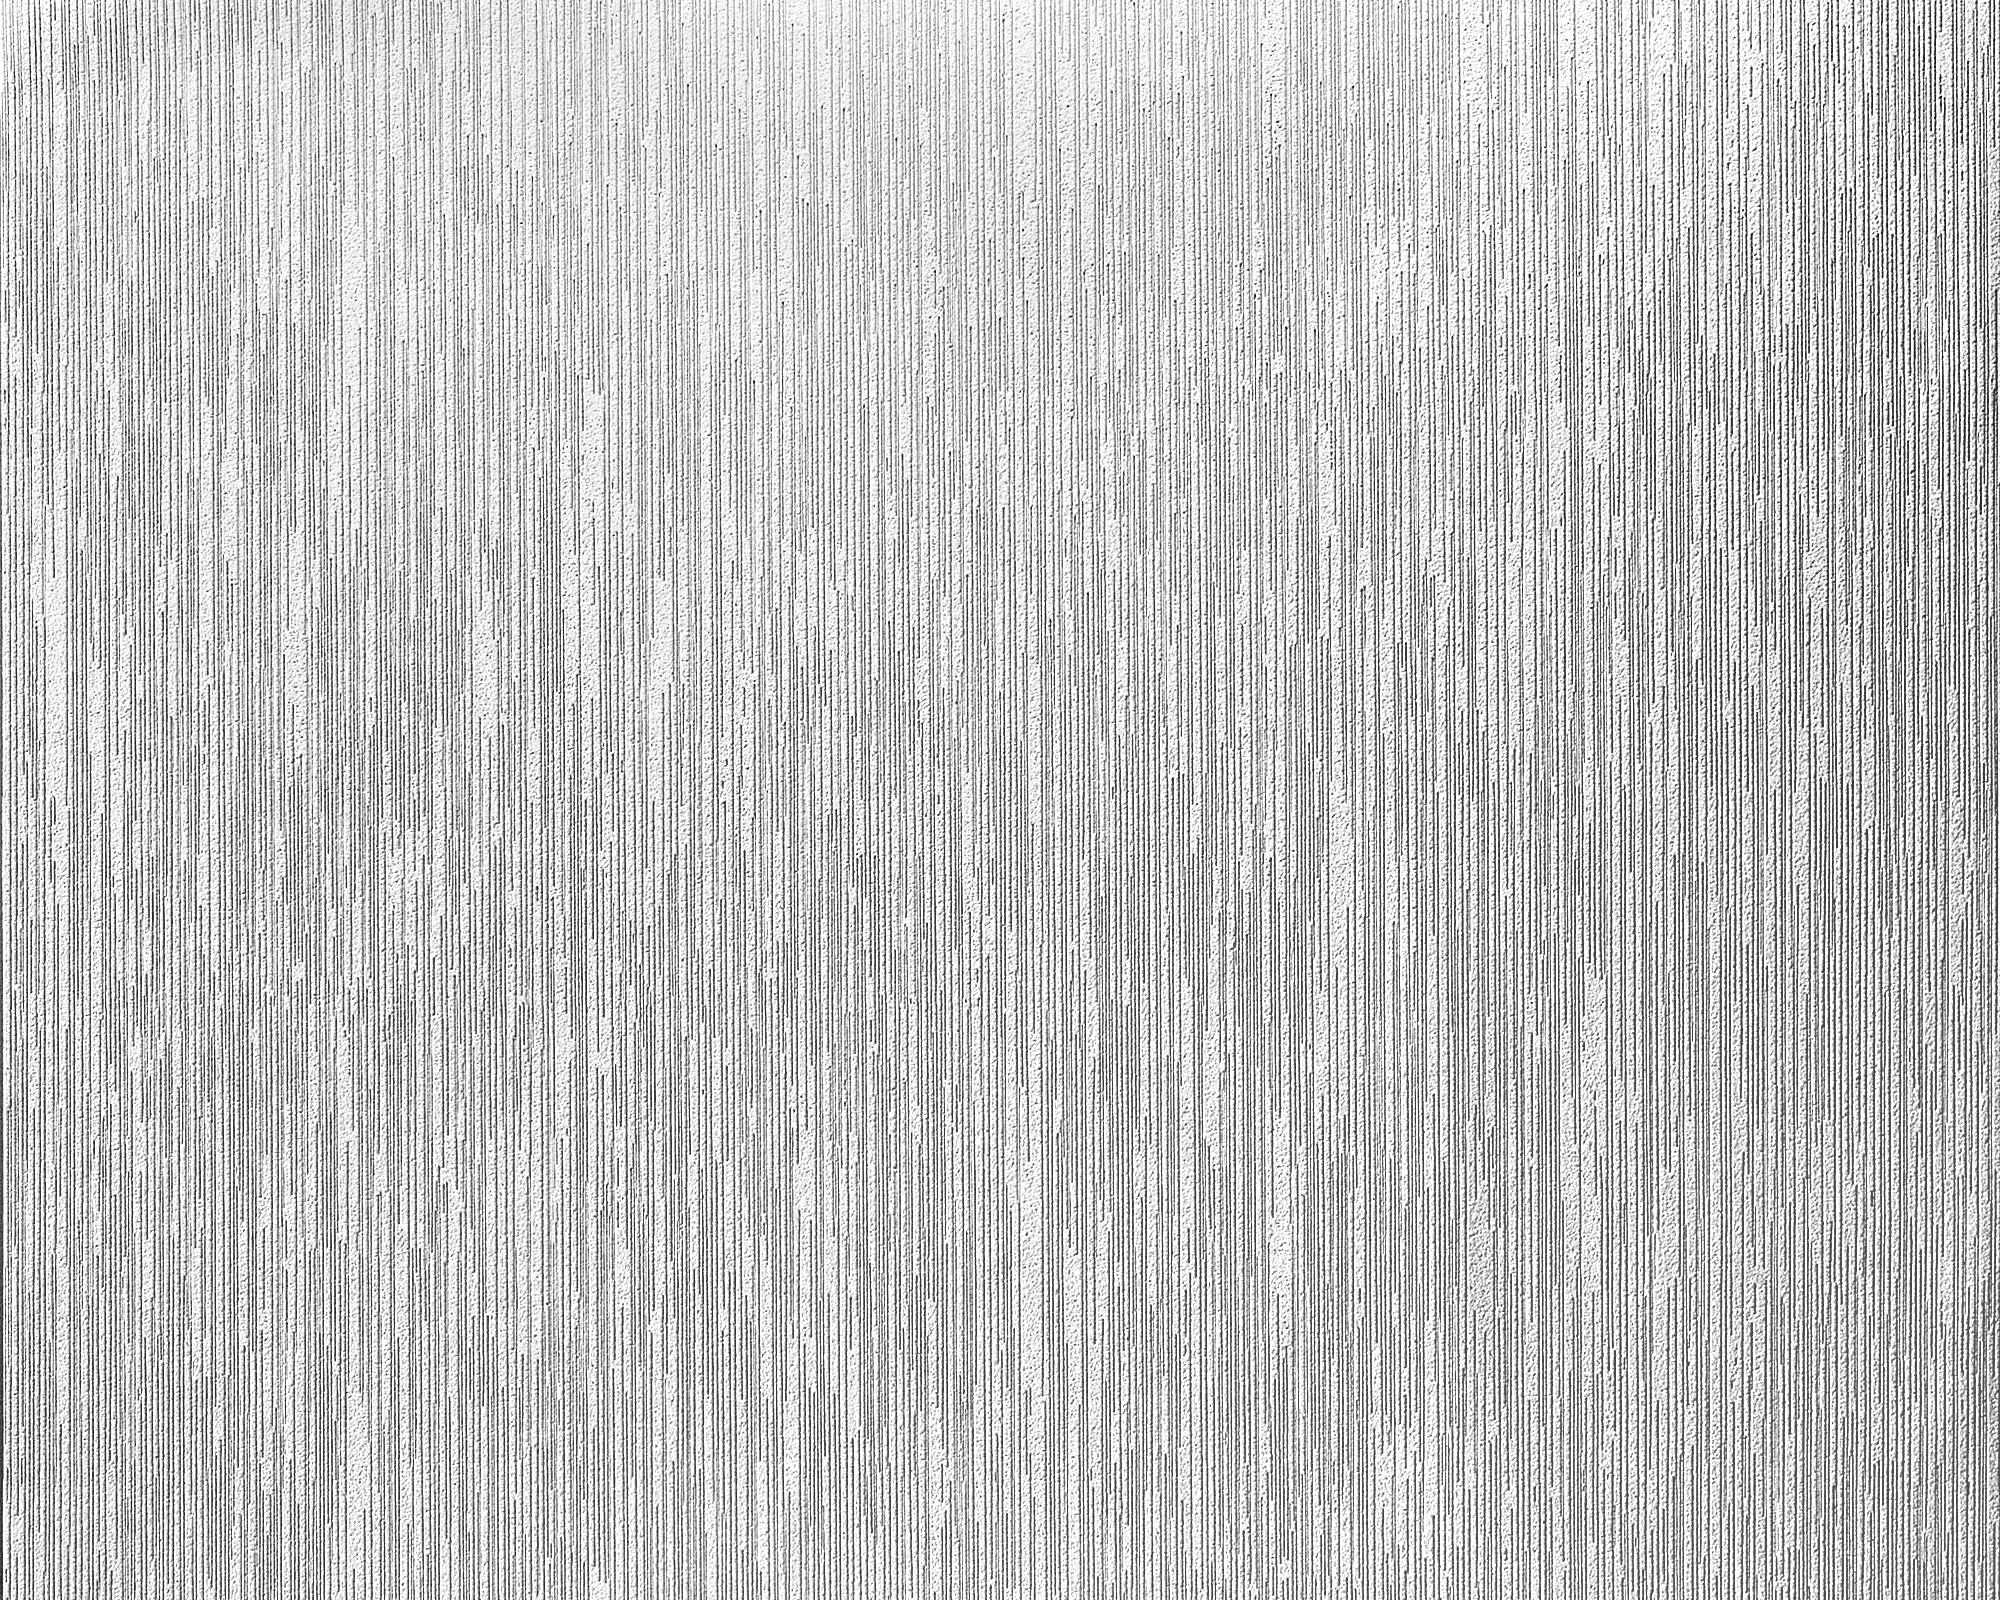 Paintable textured nonwoven wallpaper EDEM 373-60 | Architonic